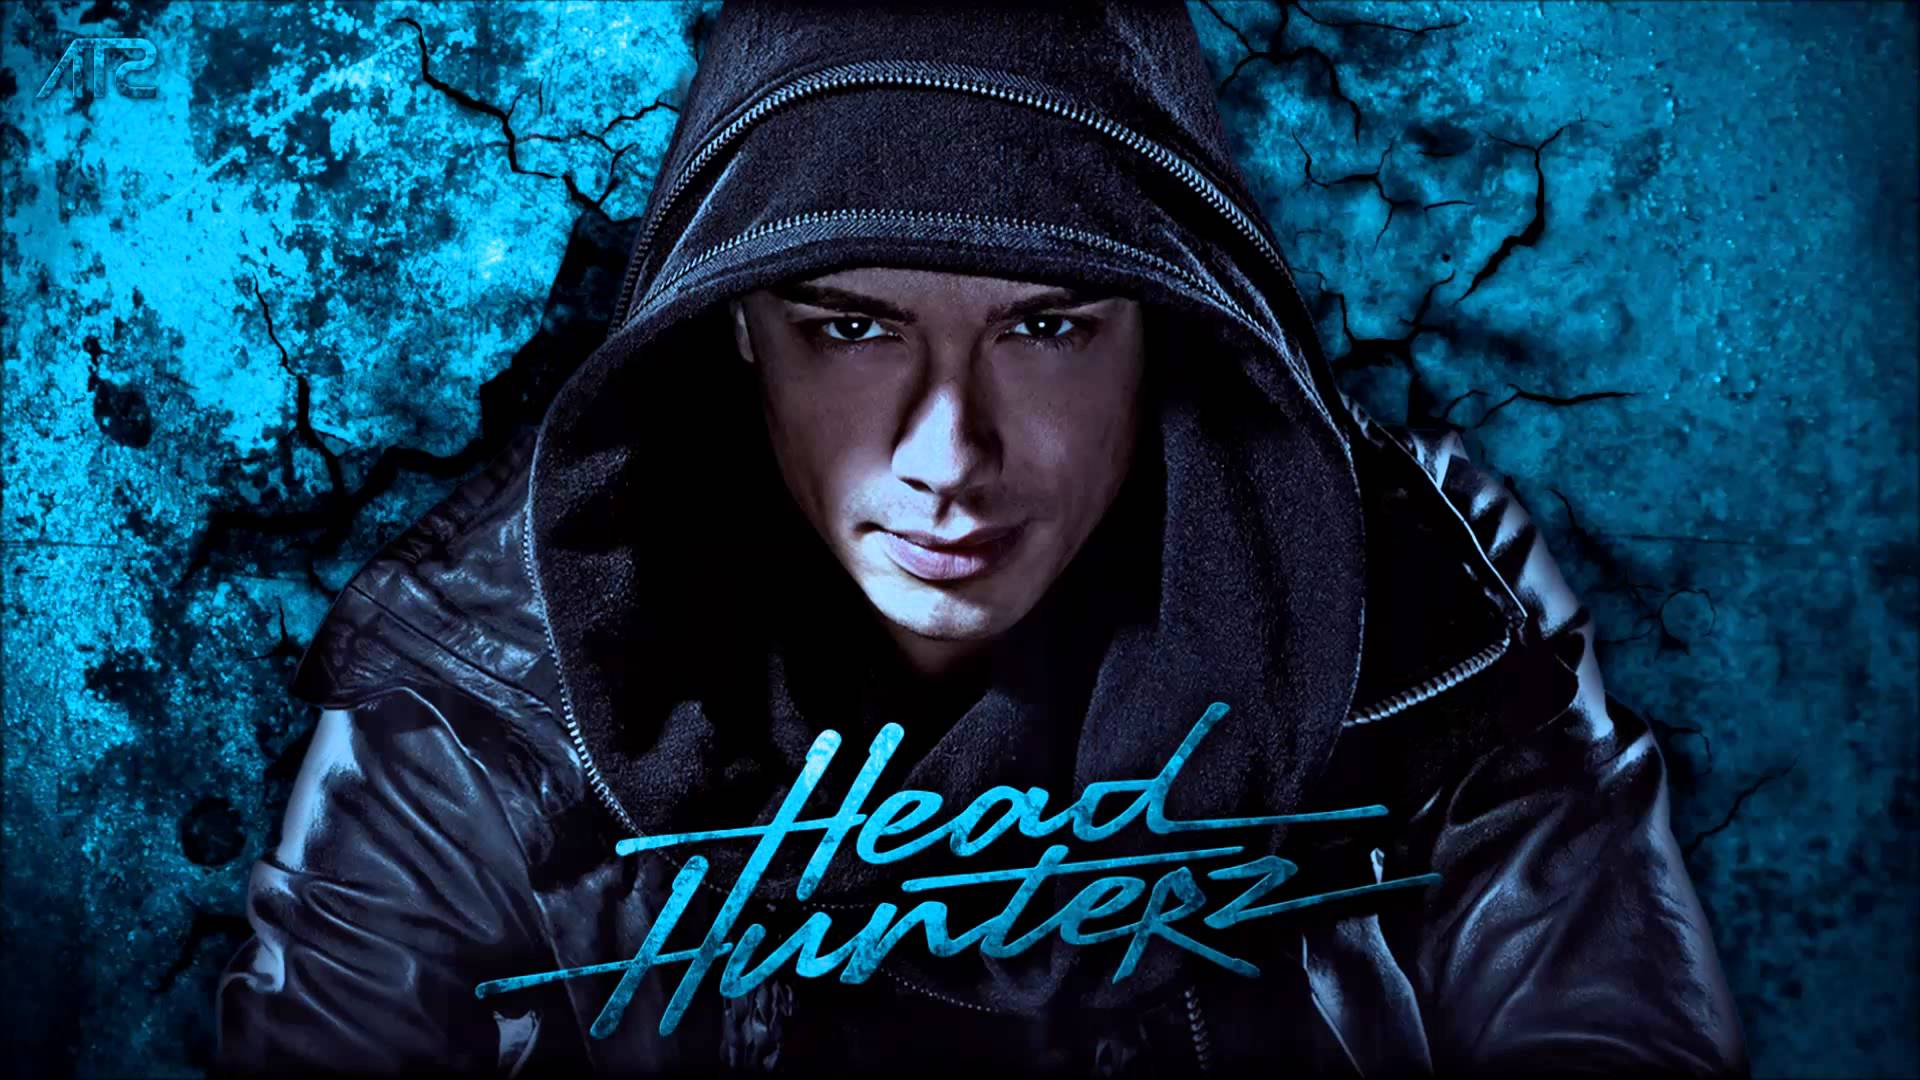 headhunterz officially announced his return to hardstyle